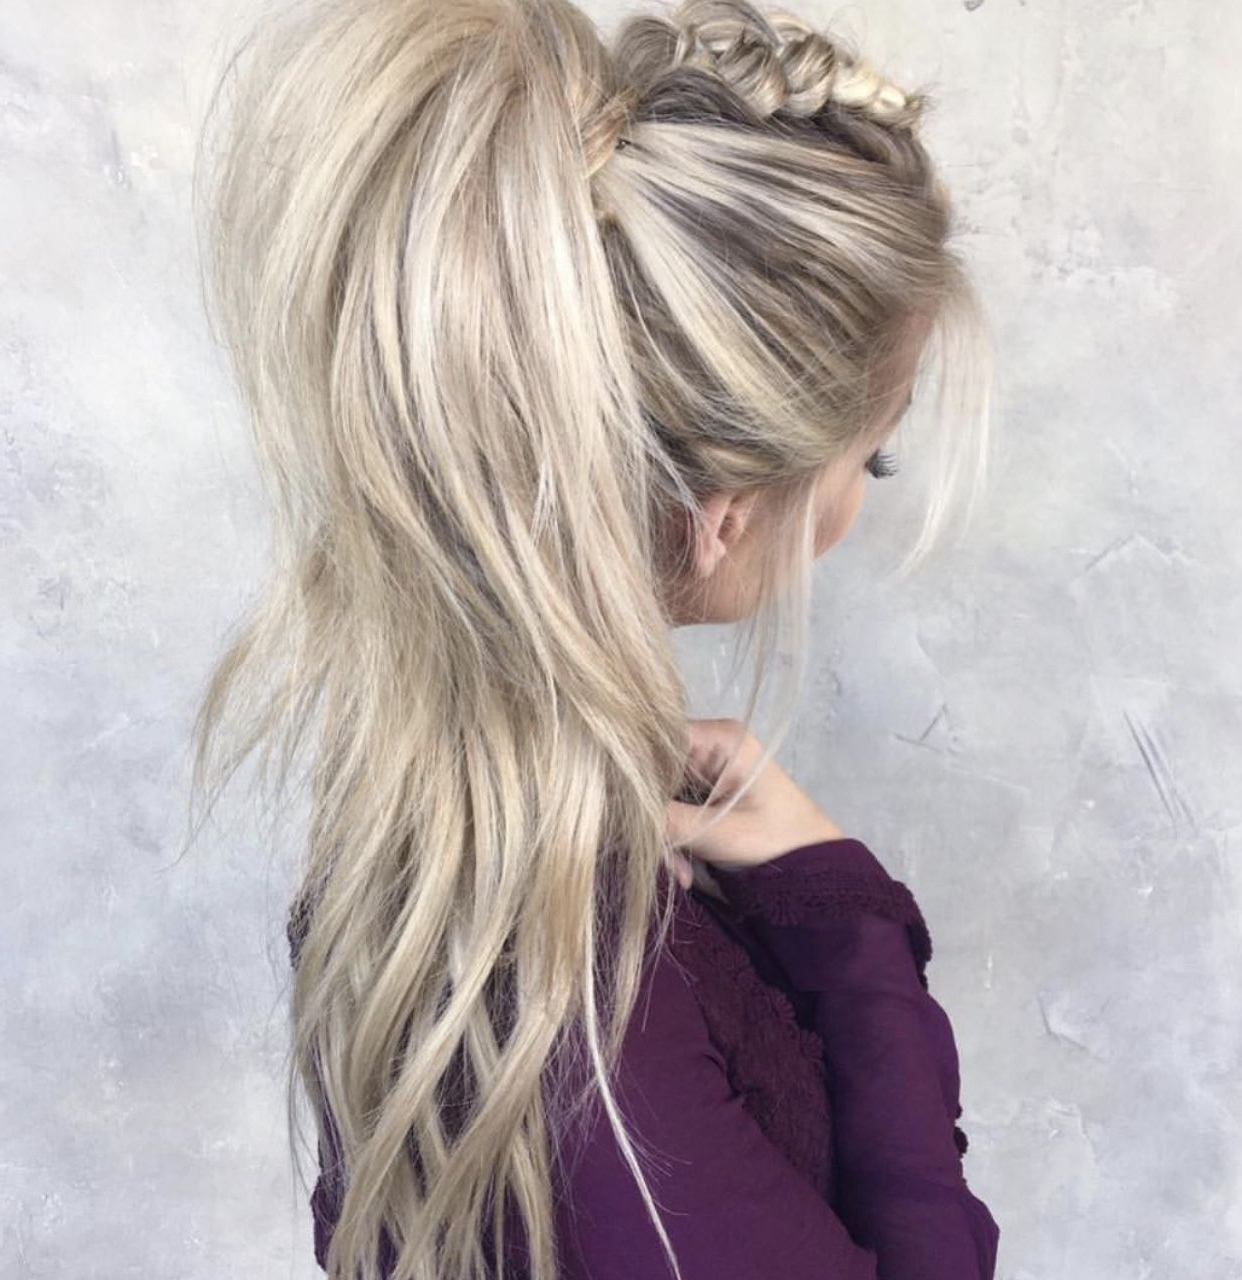 Best And Newest Sky High Pompadour Braid Pony Hairstyles Within Teased, Messy Mohawk Braid Pulled Into A High Ponytail (View 4 of 20)